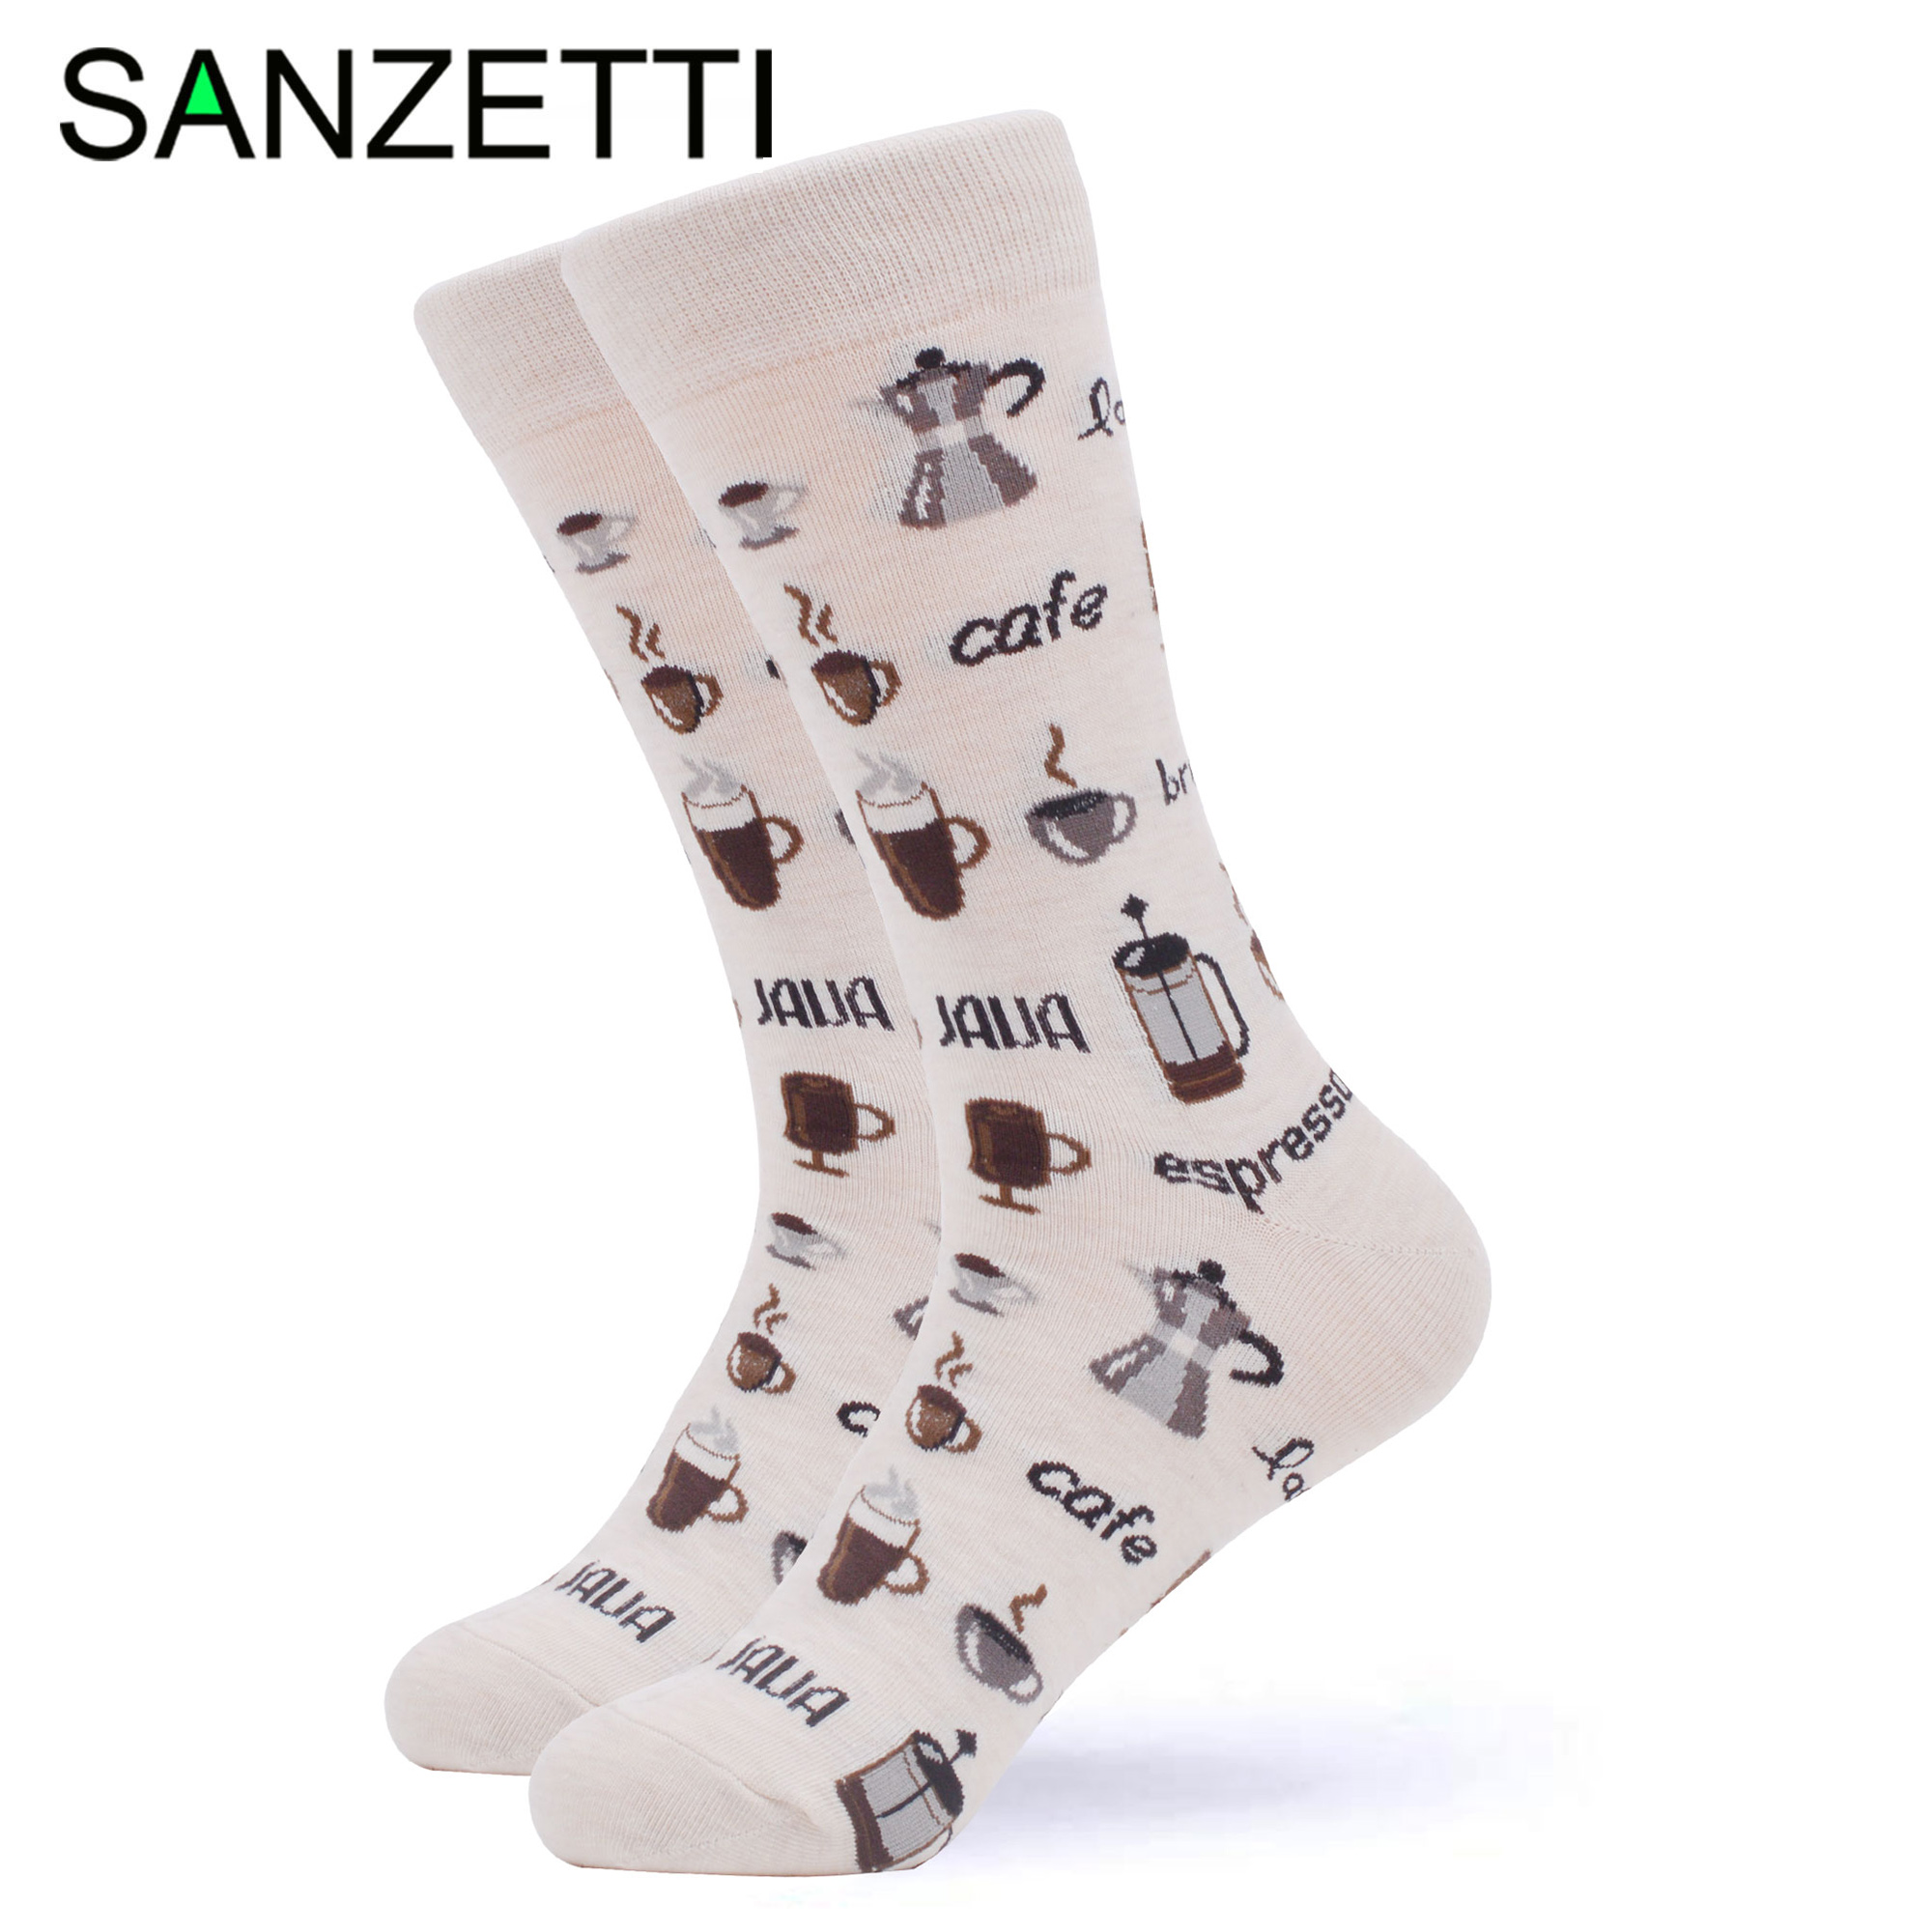 SANZETTI 1 Pair Colorful Bright Women Socks Novelty Combed Cotton Fun Cute Party Cake Coffee Egg Gifts Wedding Dress Happy Socks